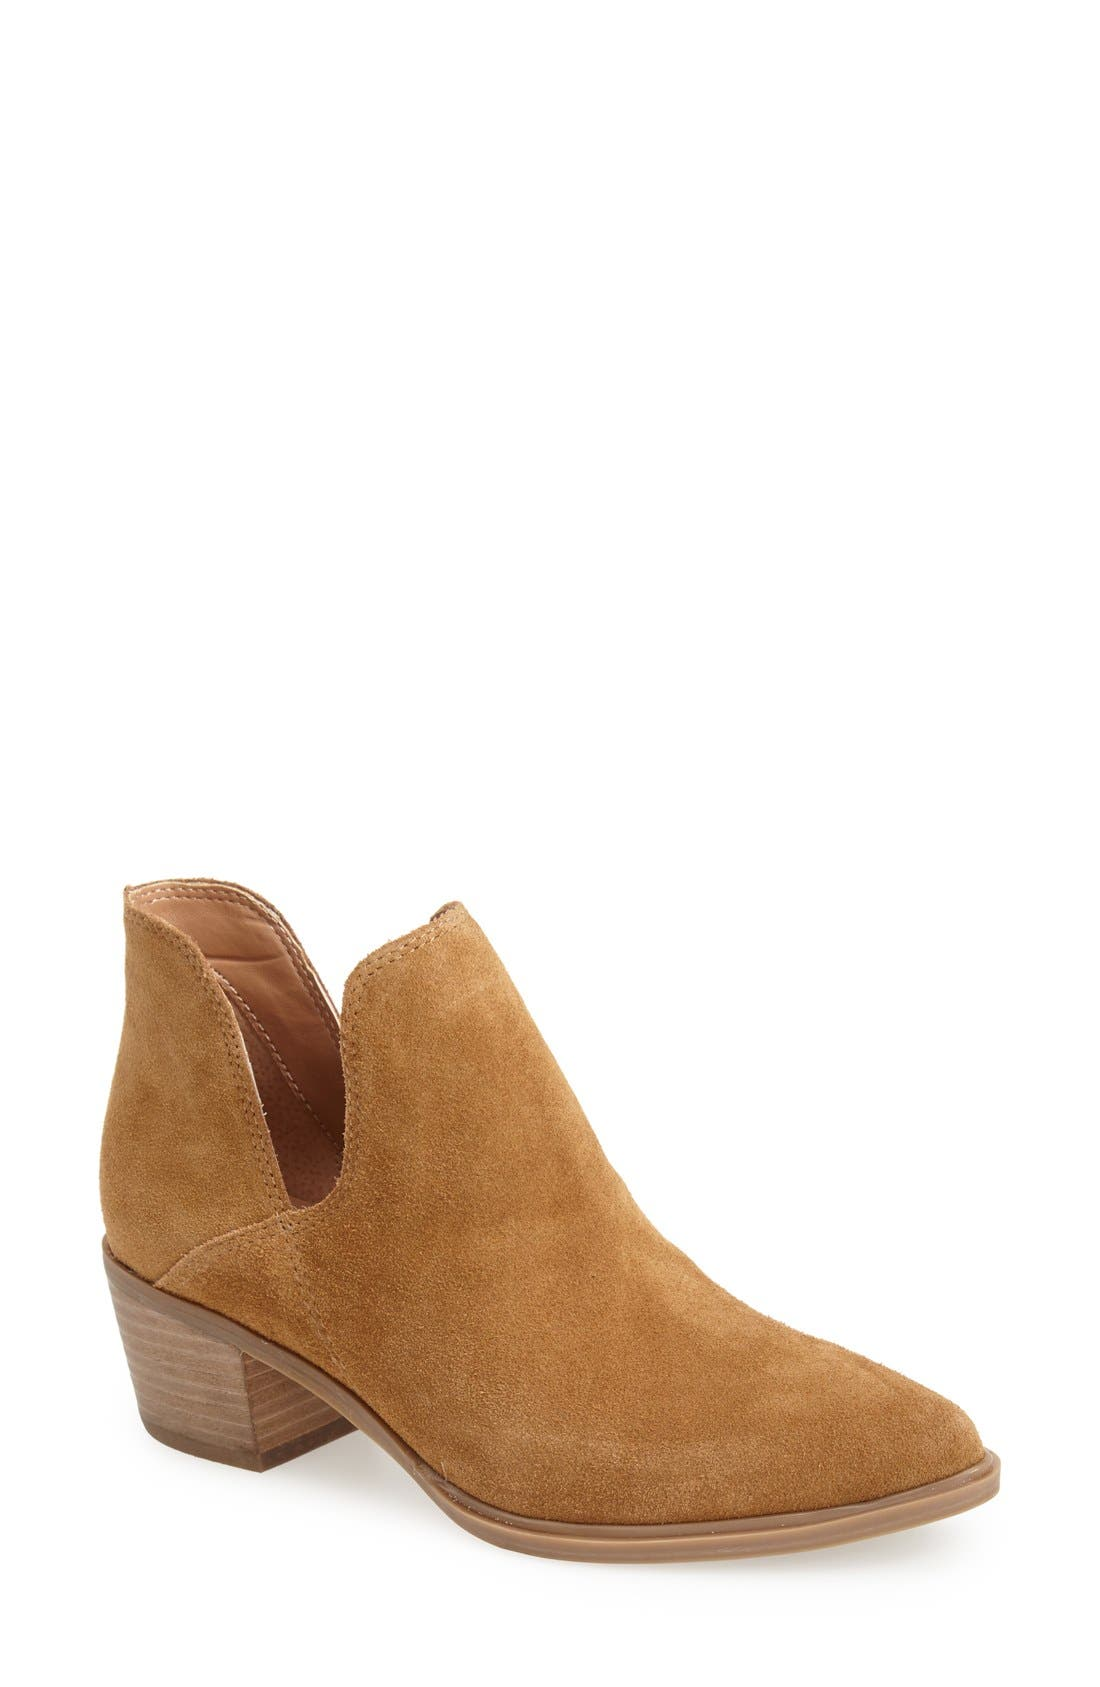 'Dextir' Pointy Toe Ankle Bootie,                             Main thumbnail 1, color,                             Camel Suede